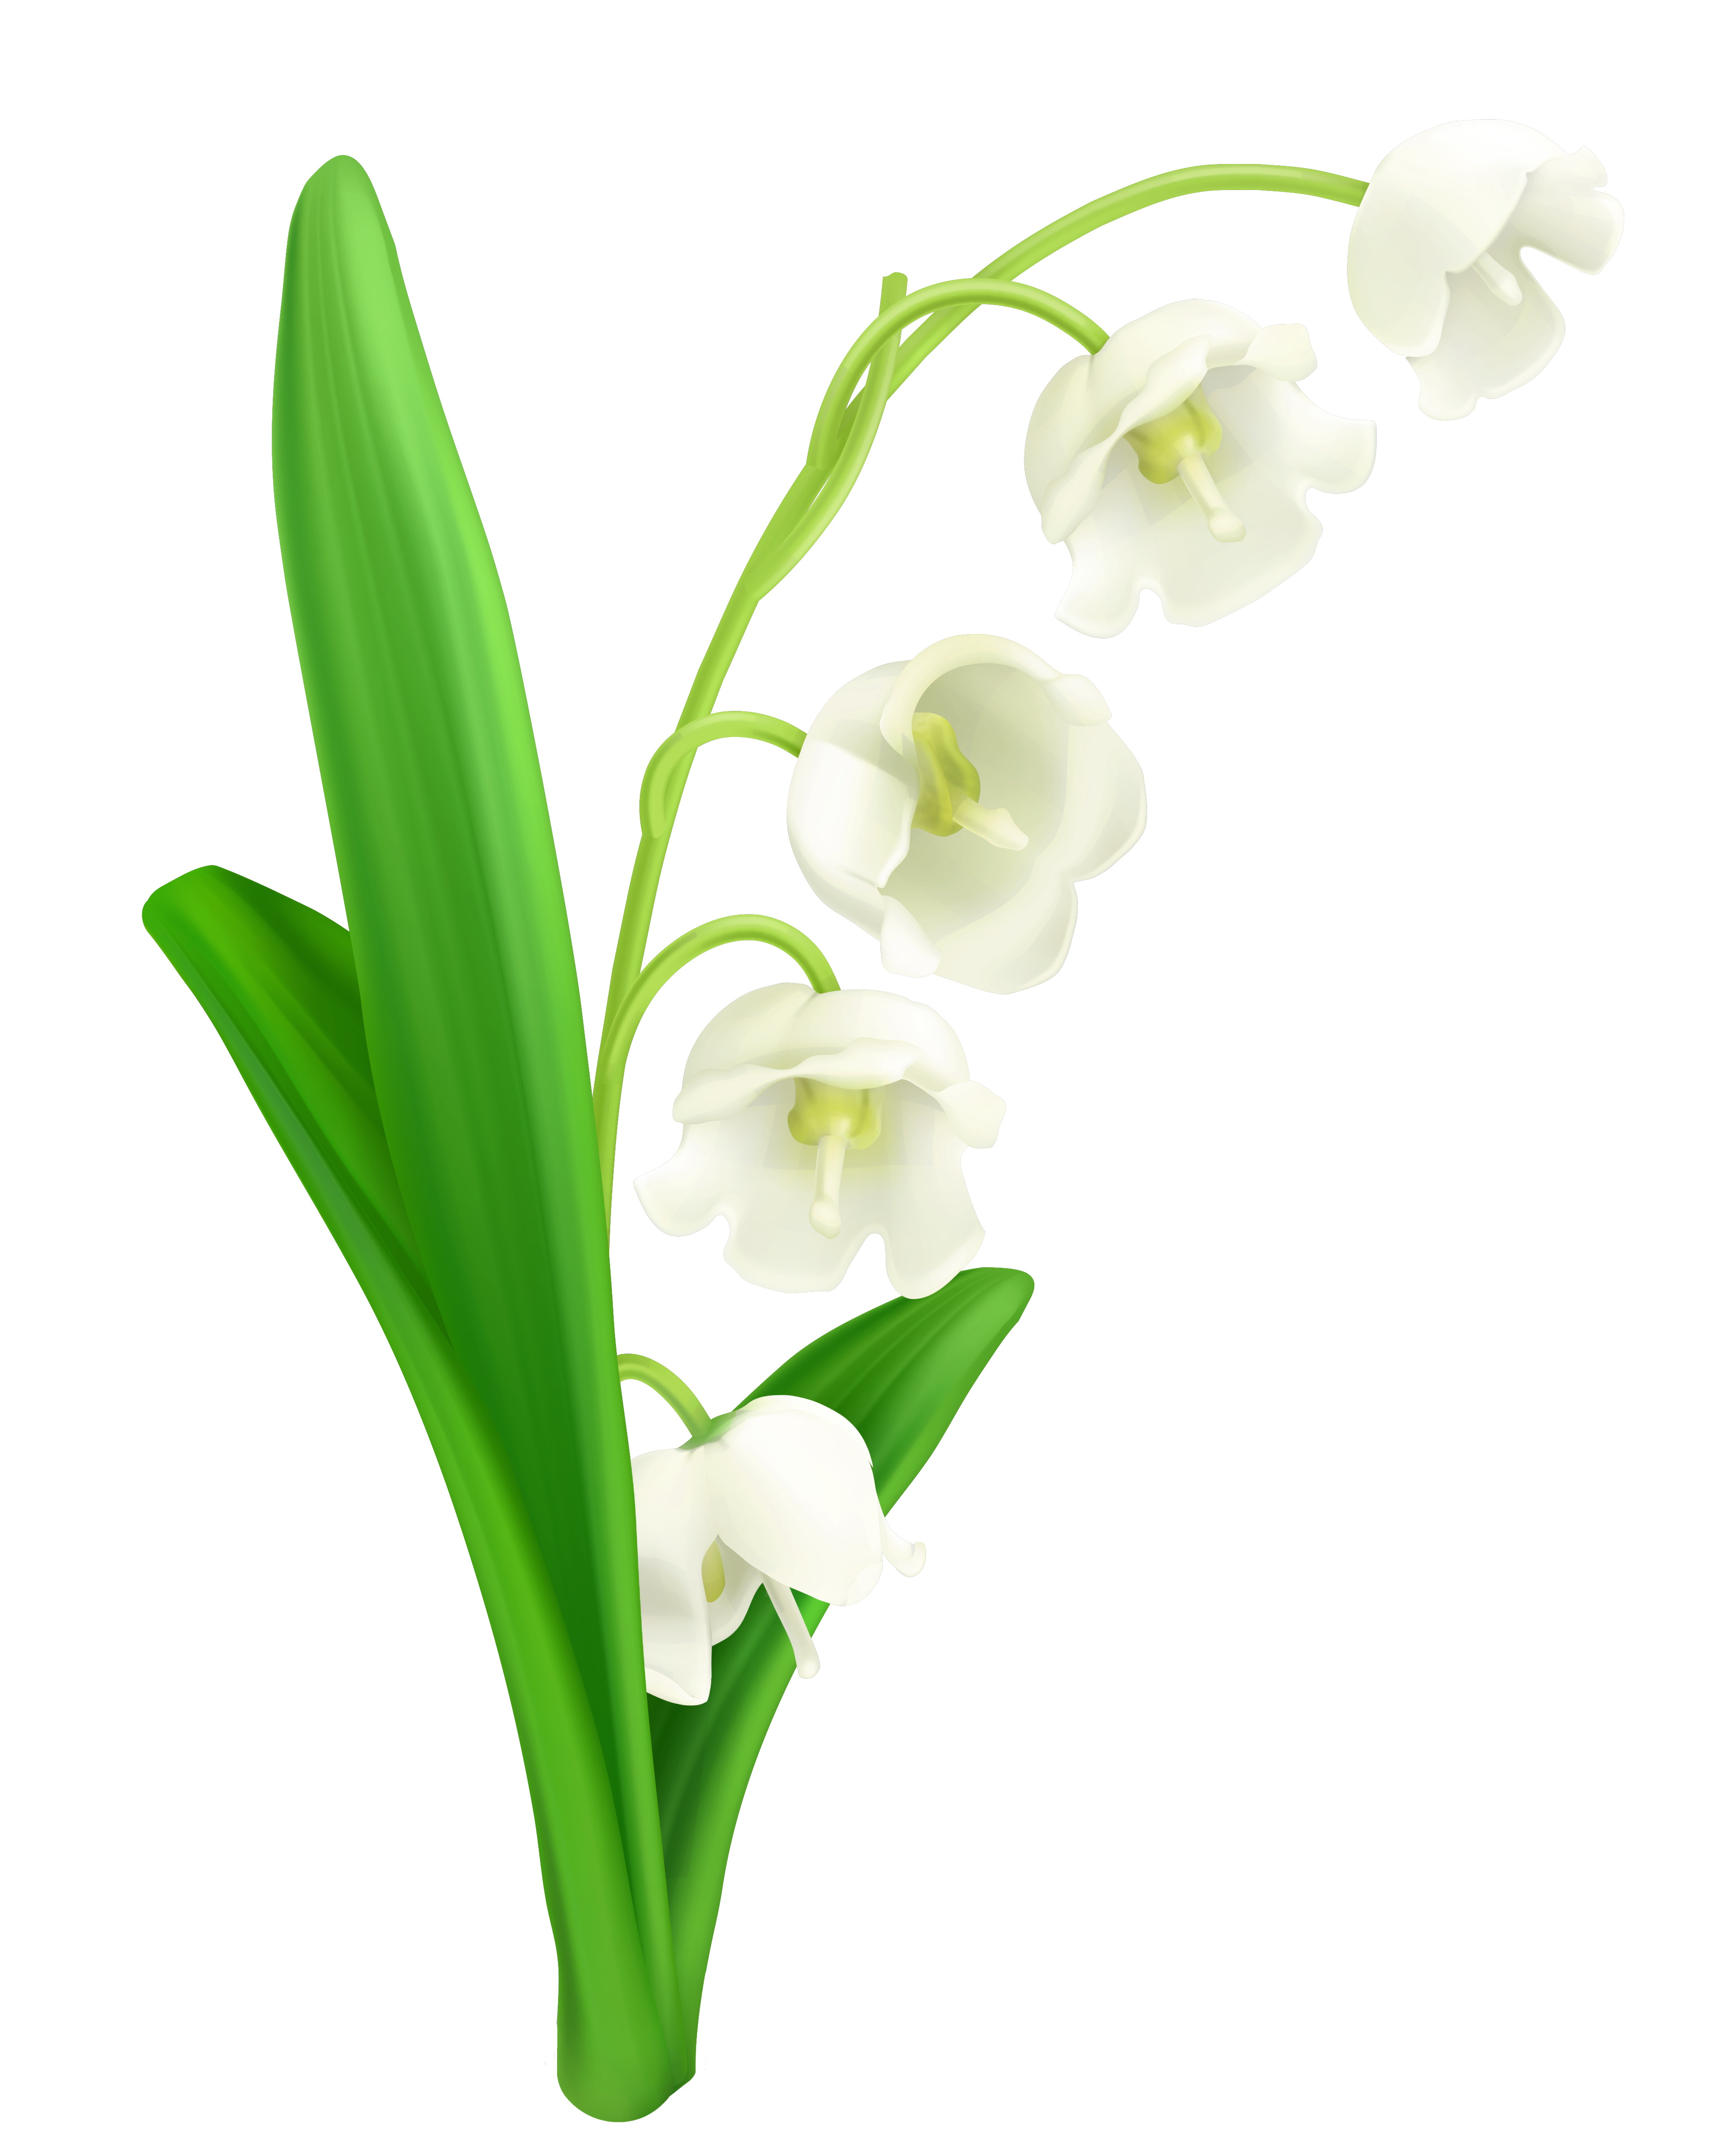 Lily Of The Valley clipart #2, Download drawings